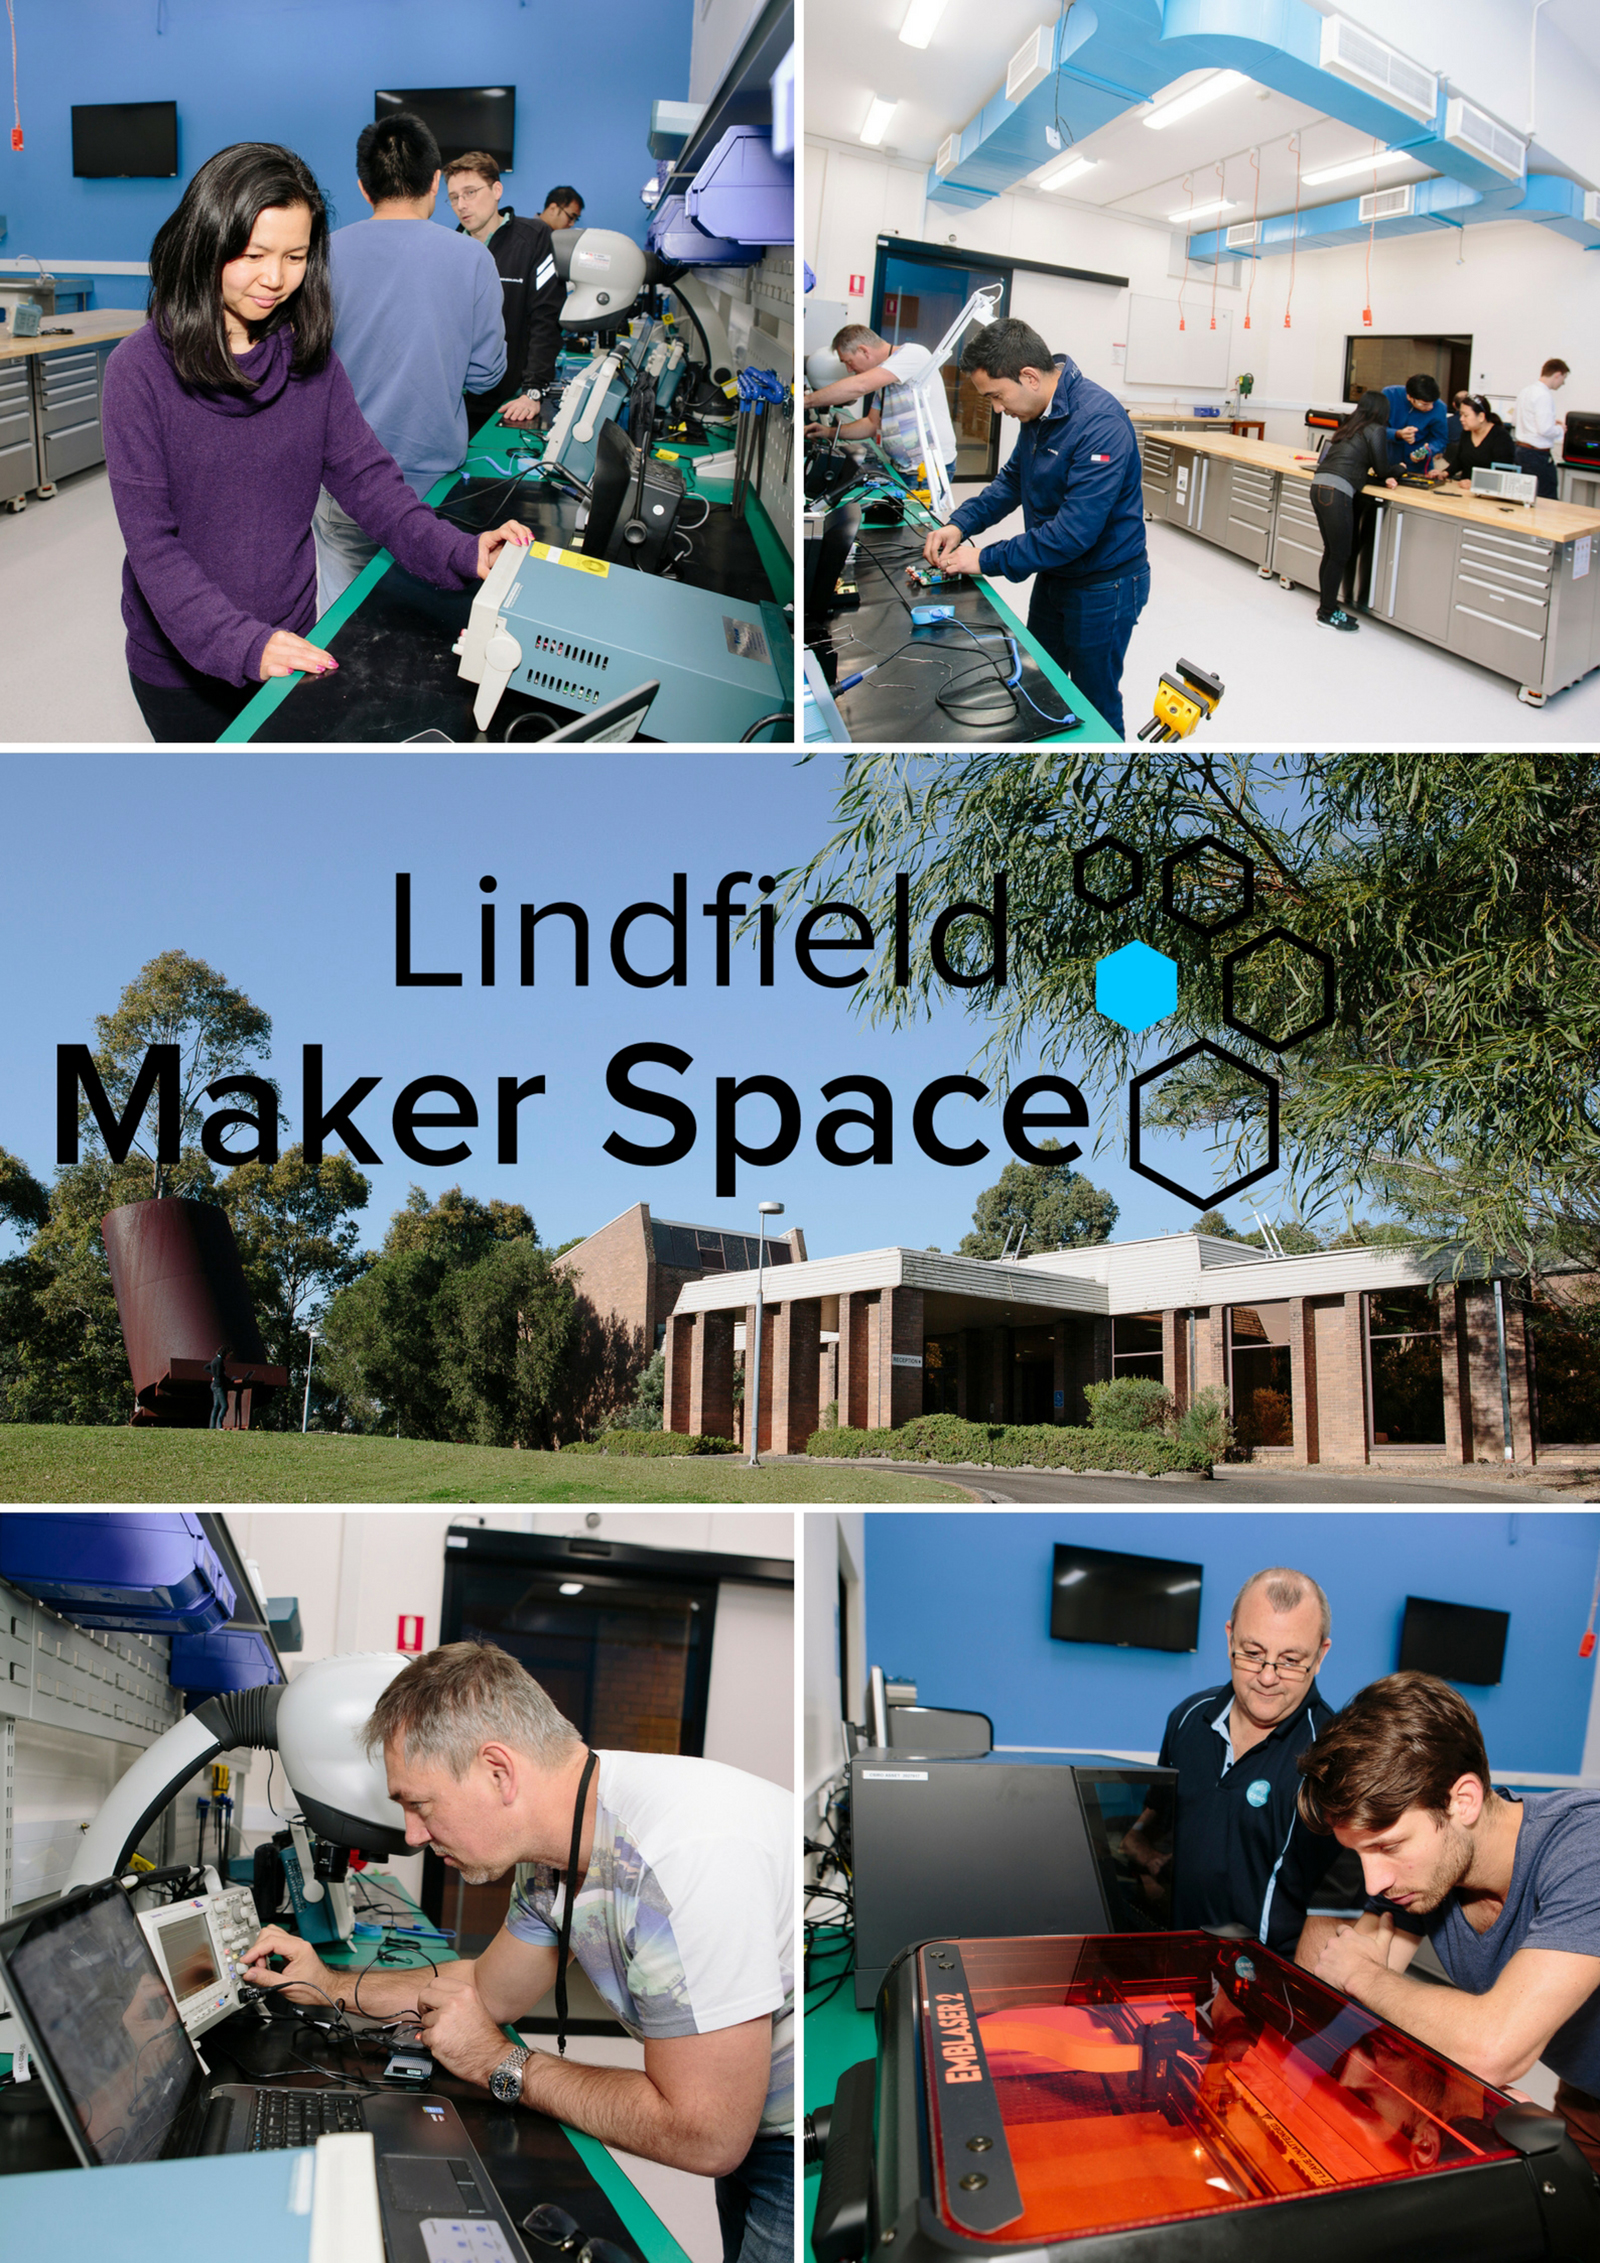 Lindfield Maker Space. Various images of people working in the facility.